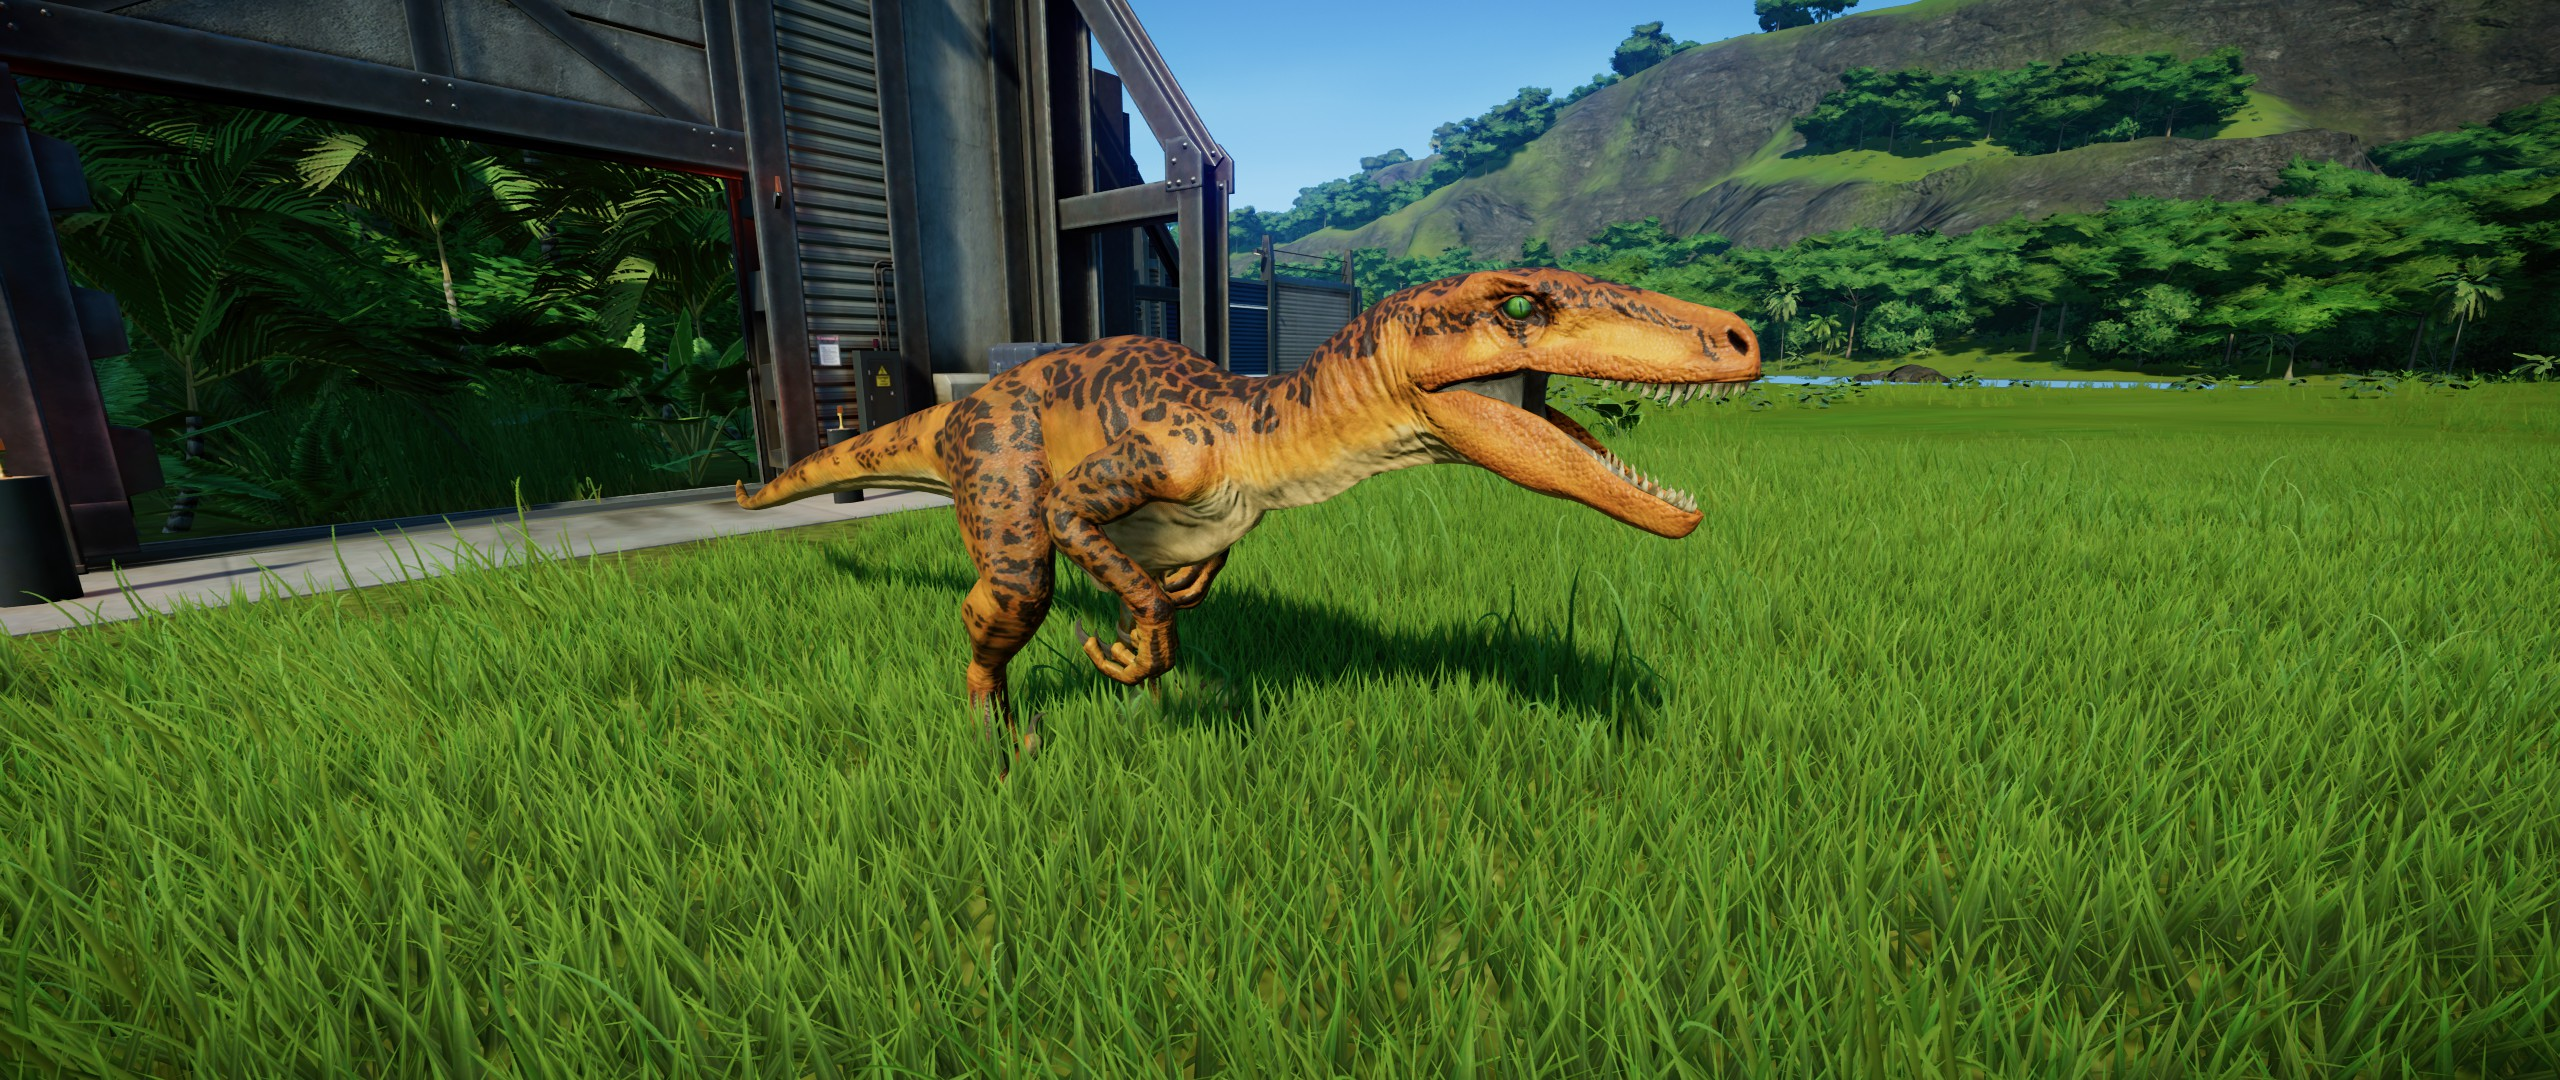 Utahraptor Mod For Jurassic World Evolution Mod Db The basic pattern is based on the concept art while the alt patterns use the base game's skin, but you can. utahraptor mod for jurassic world